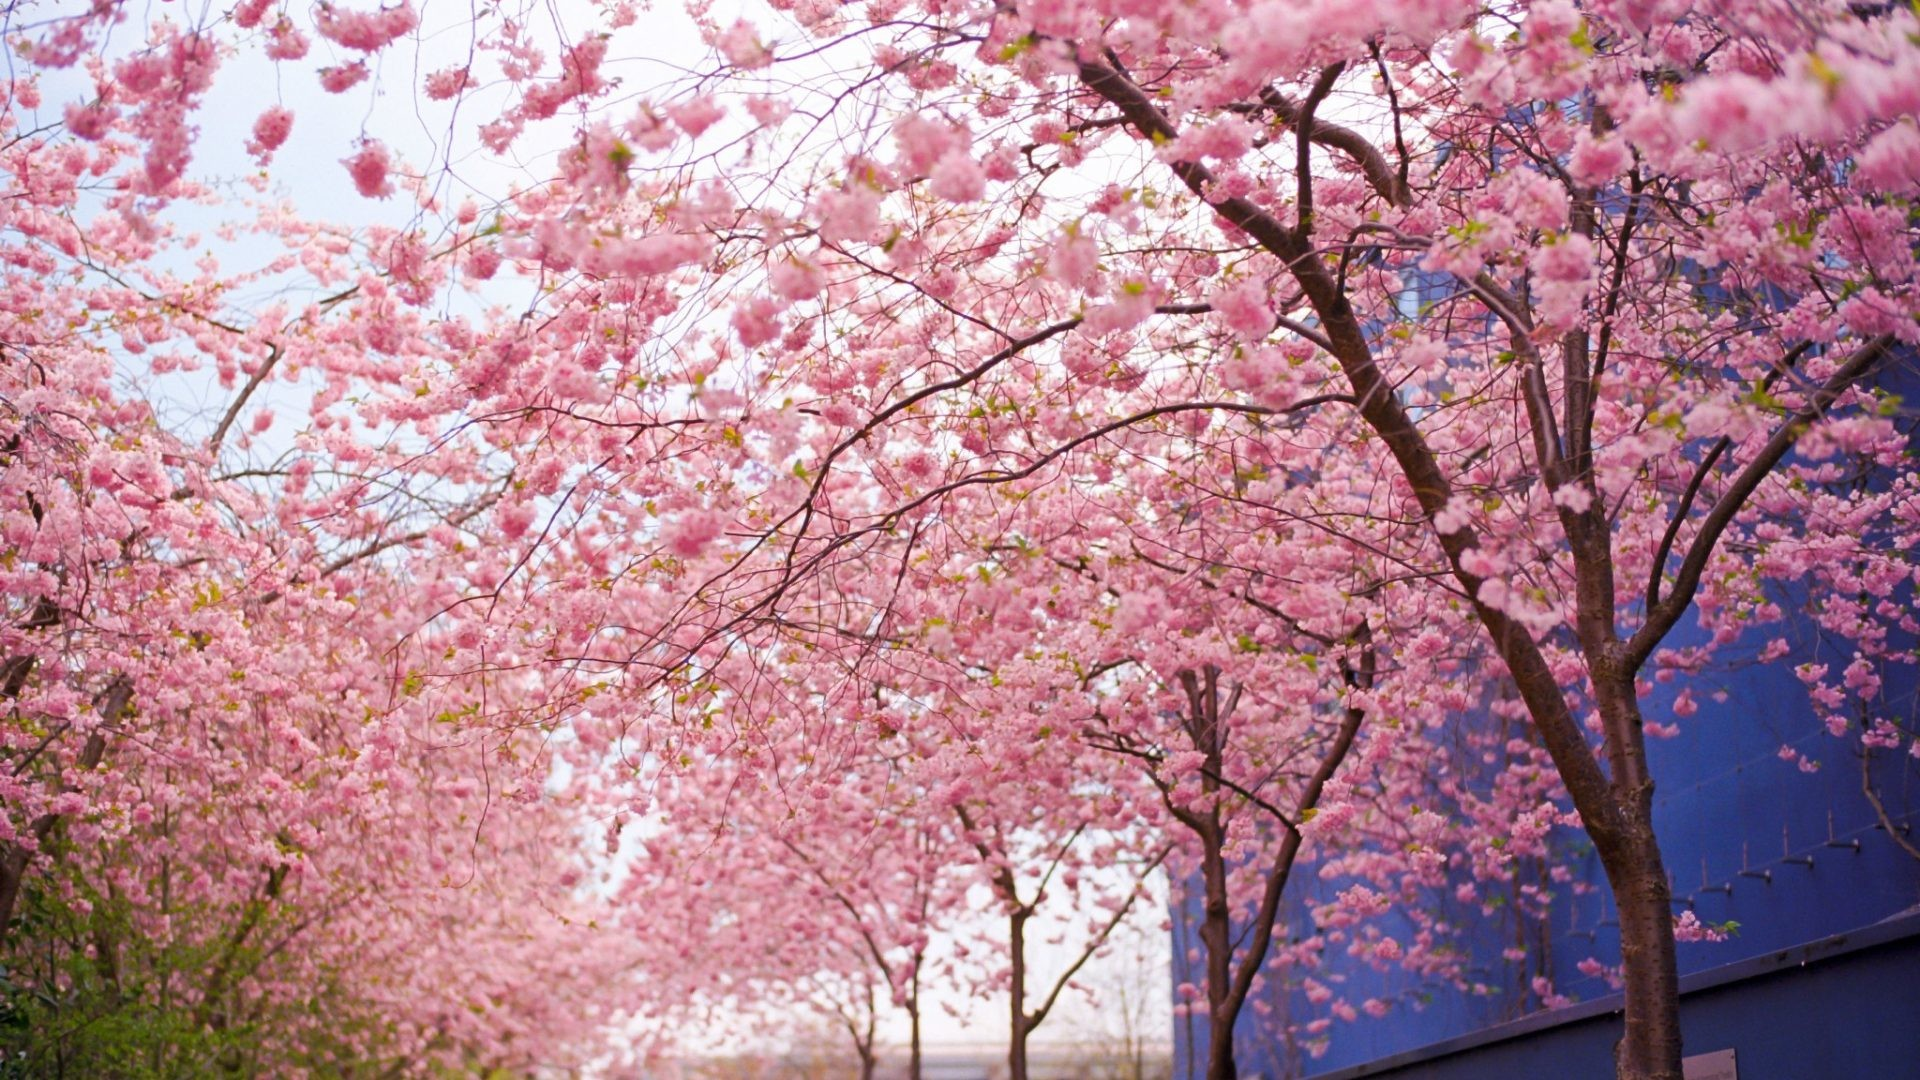 Cherry Tag – Cherry Pink Blooms Wood Branches Flowers Spring Blossoms  Nature Wallpaper Download For Mobile